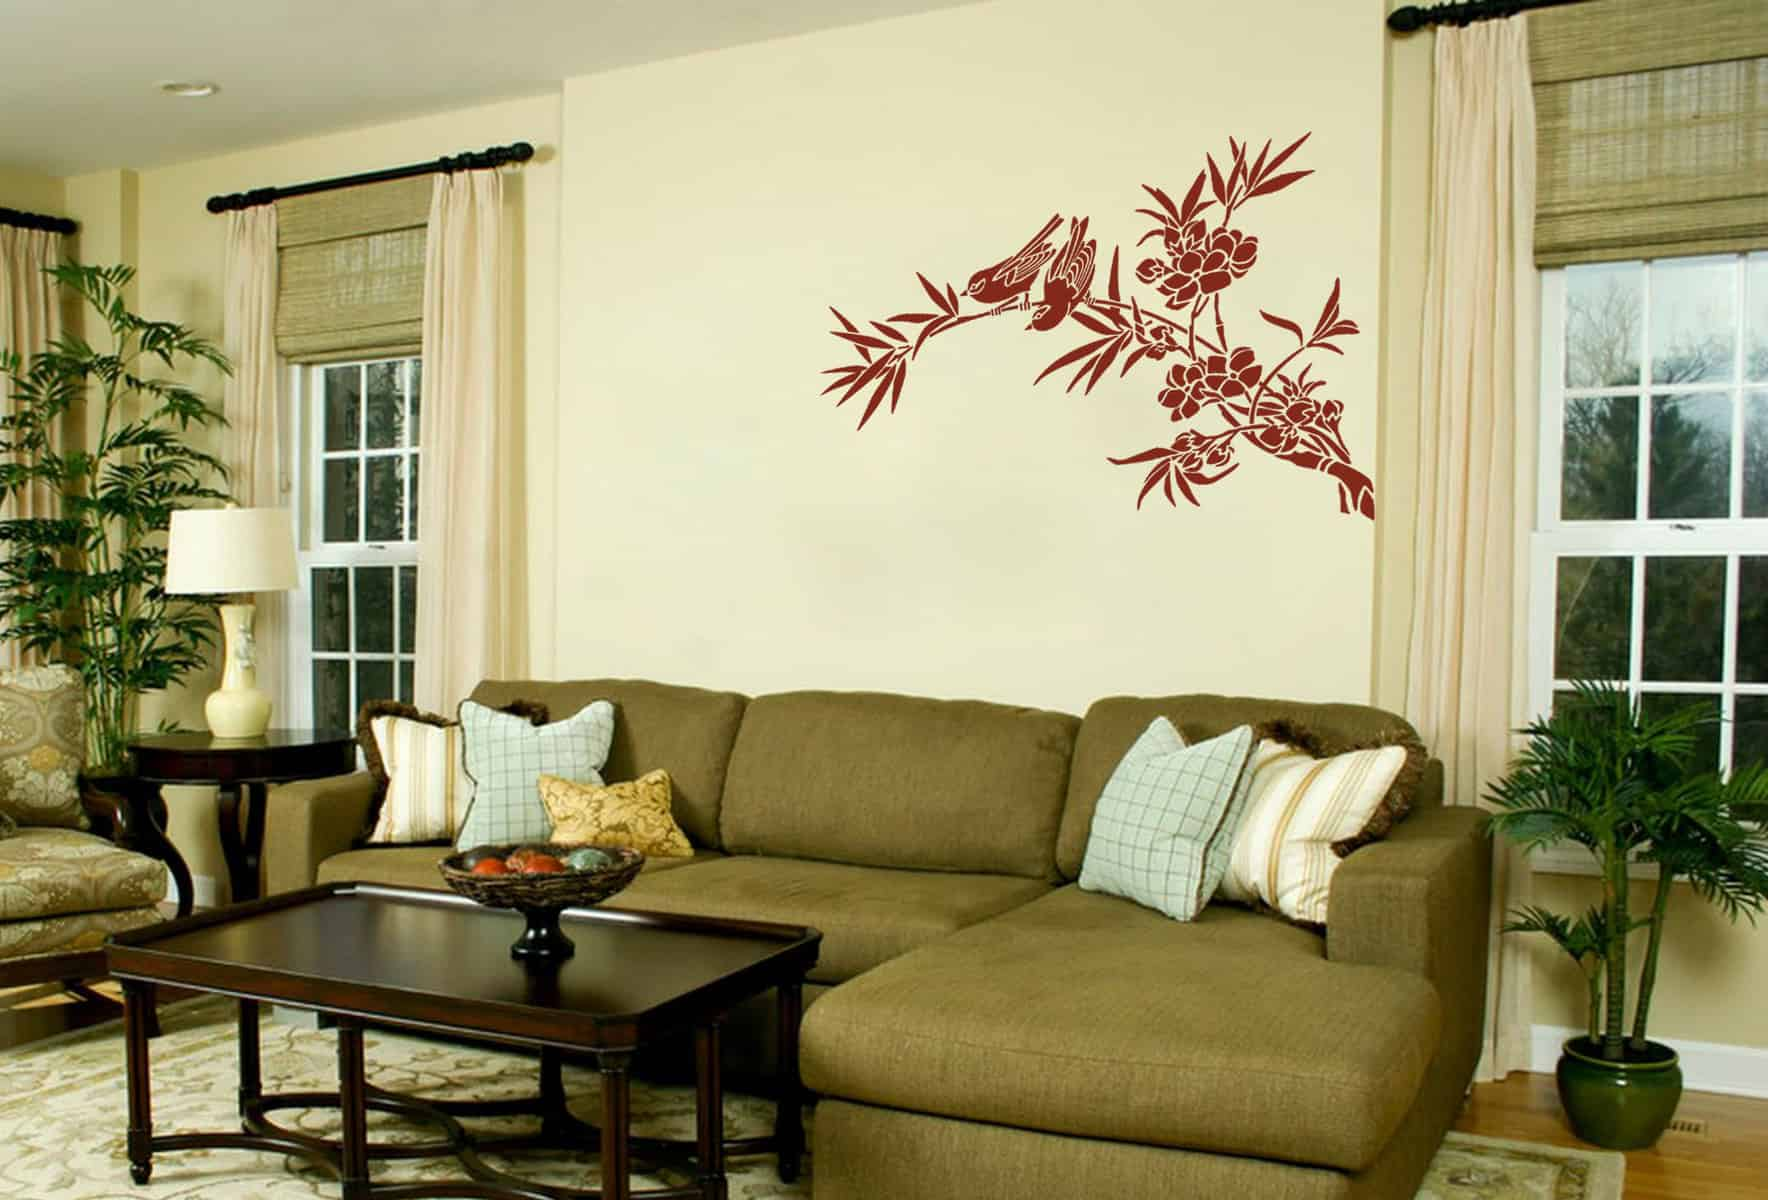 Attractive Wall Design Image   Home Design Ideas And Inspiration .